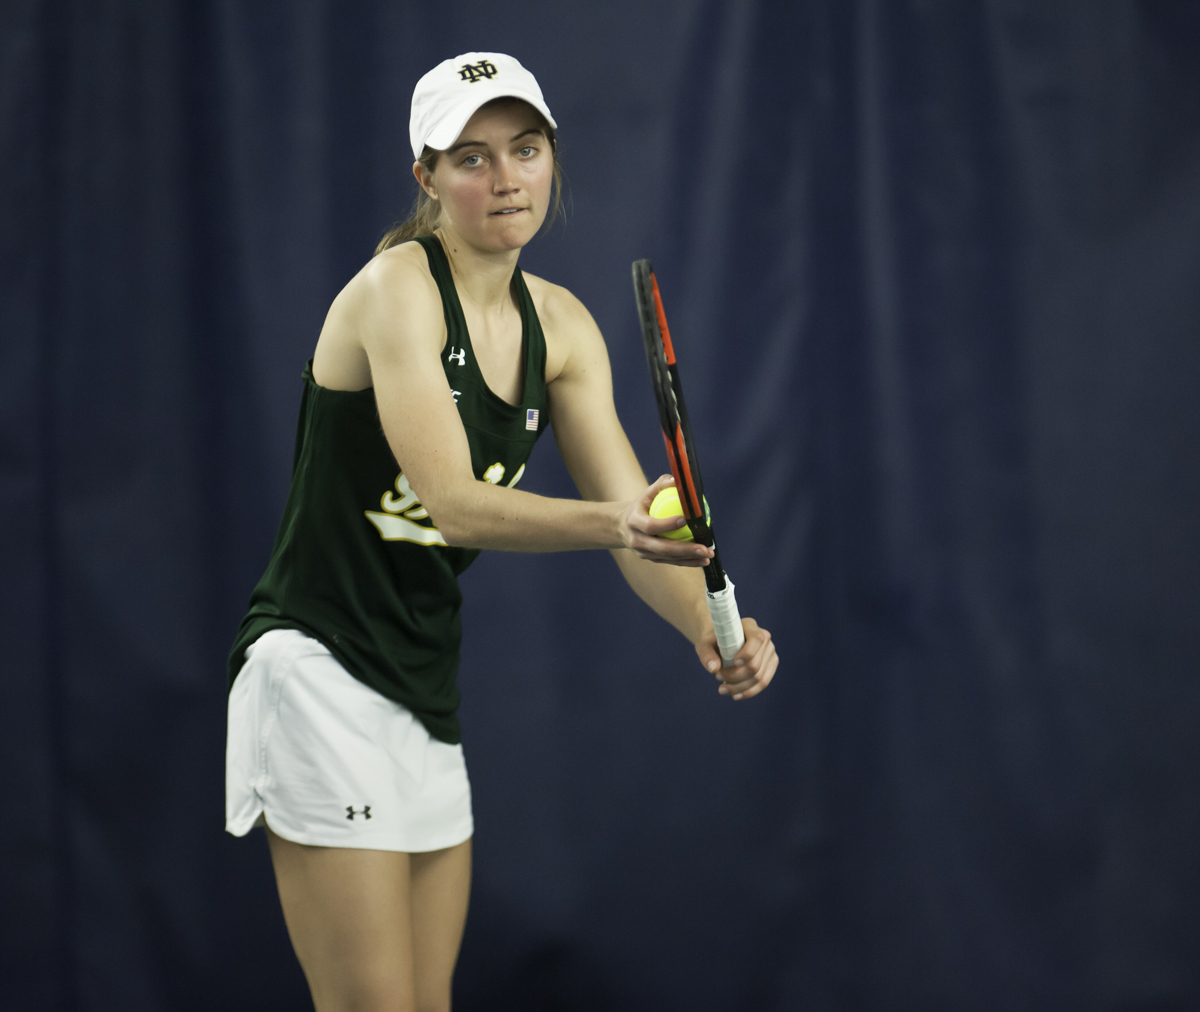 Irish senior Mary Closs prepares to serve the ball during Notre Dame's 5-2 win over Purdue on Feb. 22 at Eck Tennis Pavilion.